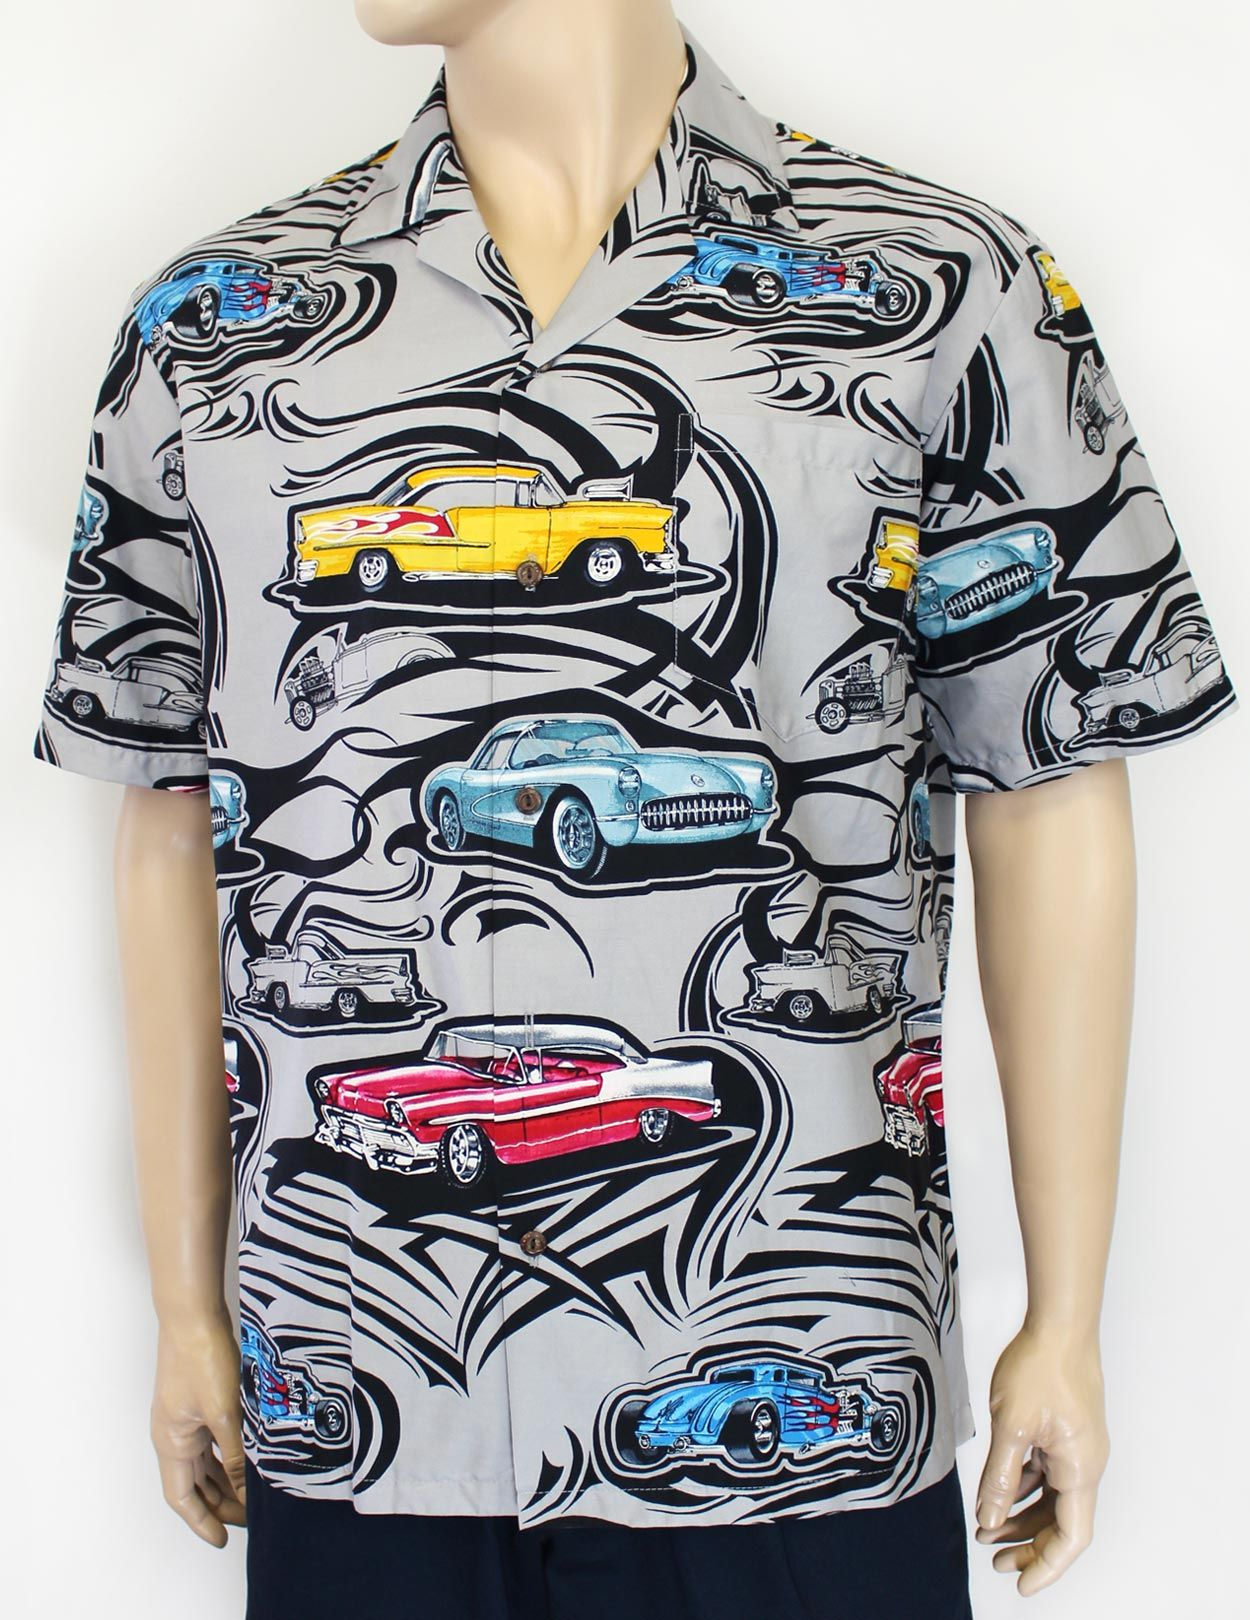 d2a3f4ee ... Rod Shop Dream Cotton Shirt at Shaka Time Hawaii Clothing Store Free  Shipping from Hawaii #hawaiianshirts #hawaiianshirt #alohashirt #cars  #mensshirt